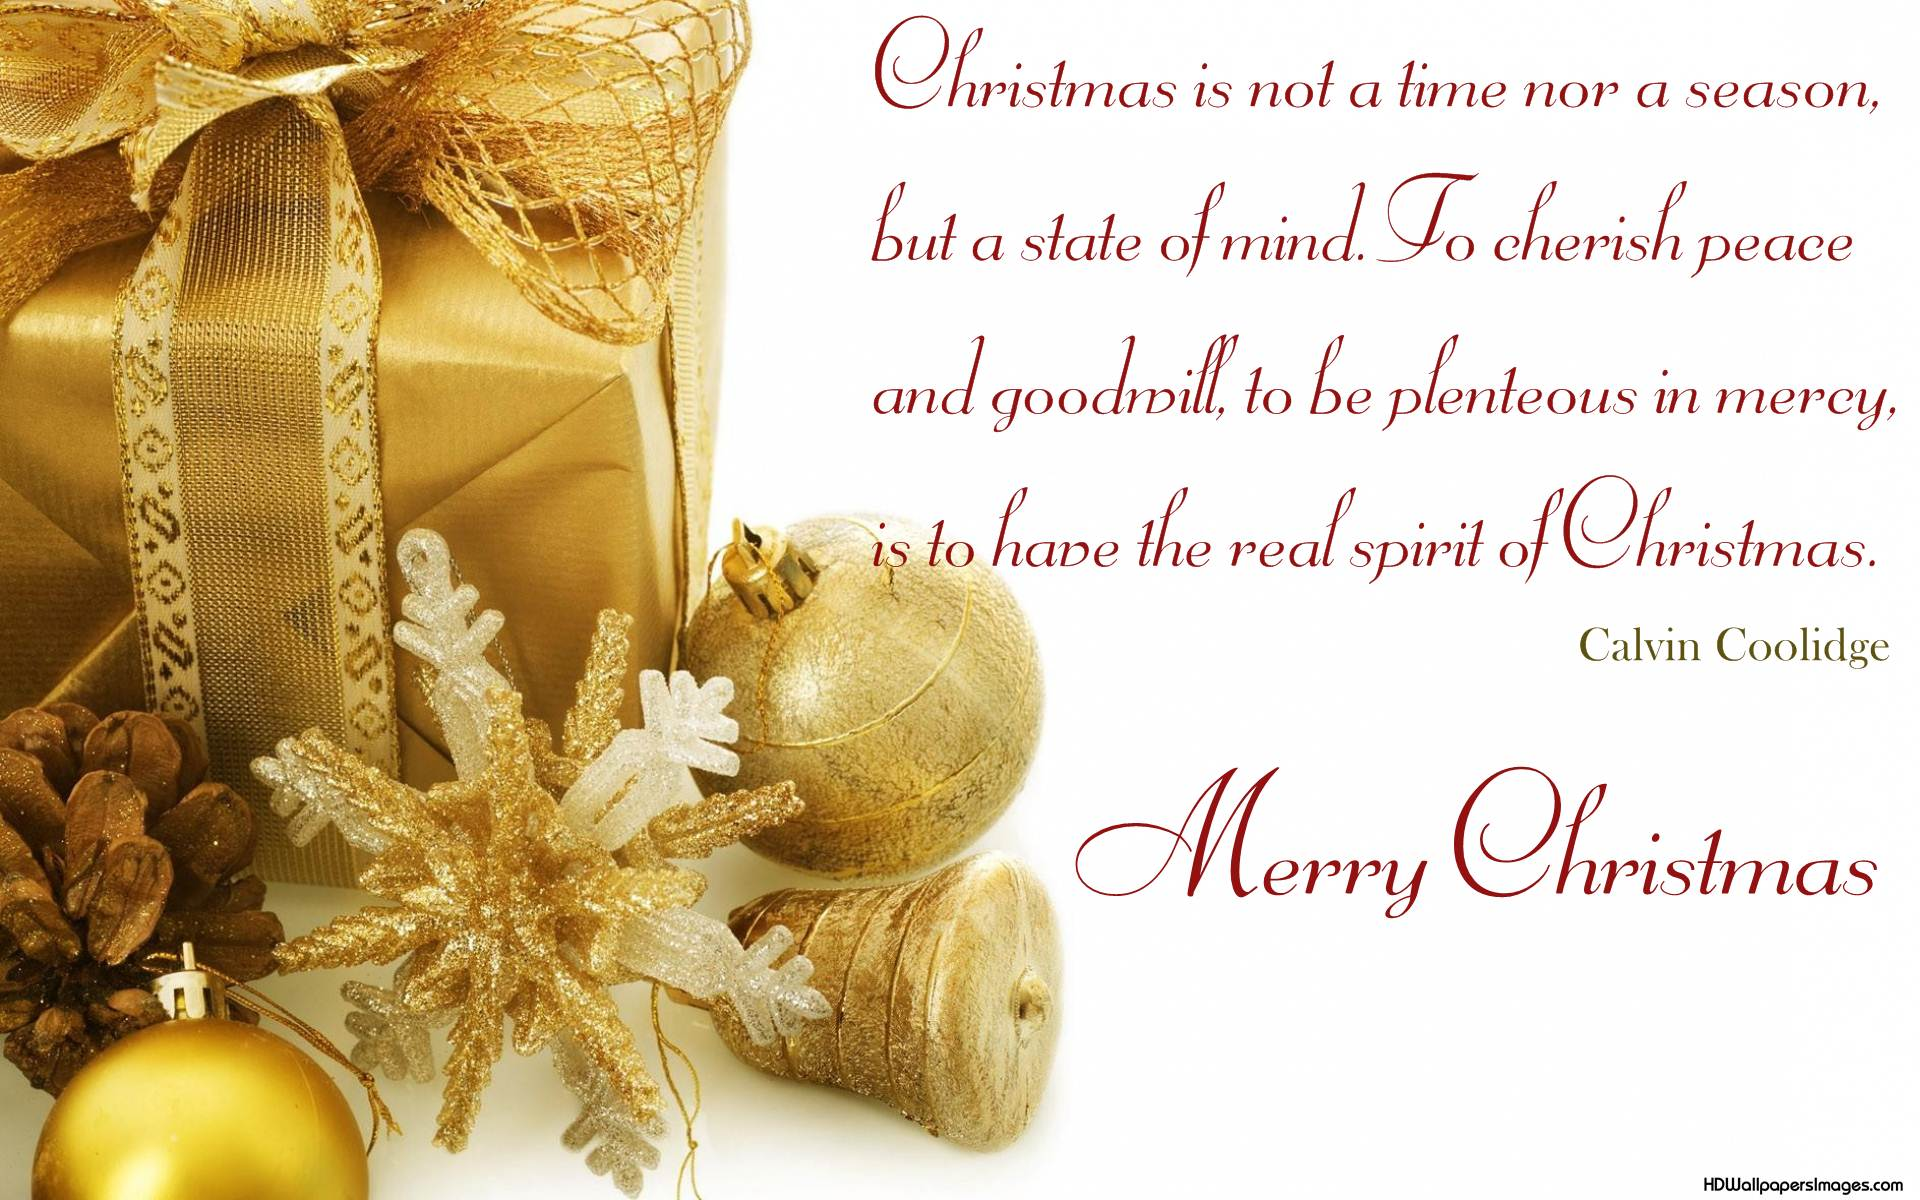 Christmas quotes christmas quotes to warm your heart this holiday 20 merry christmas quotes 2014 m4hsunfo